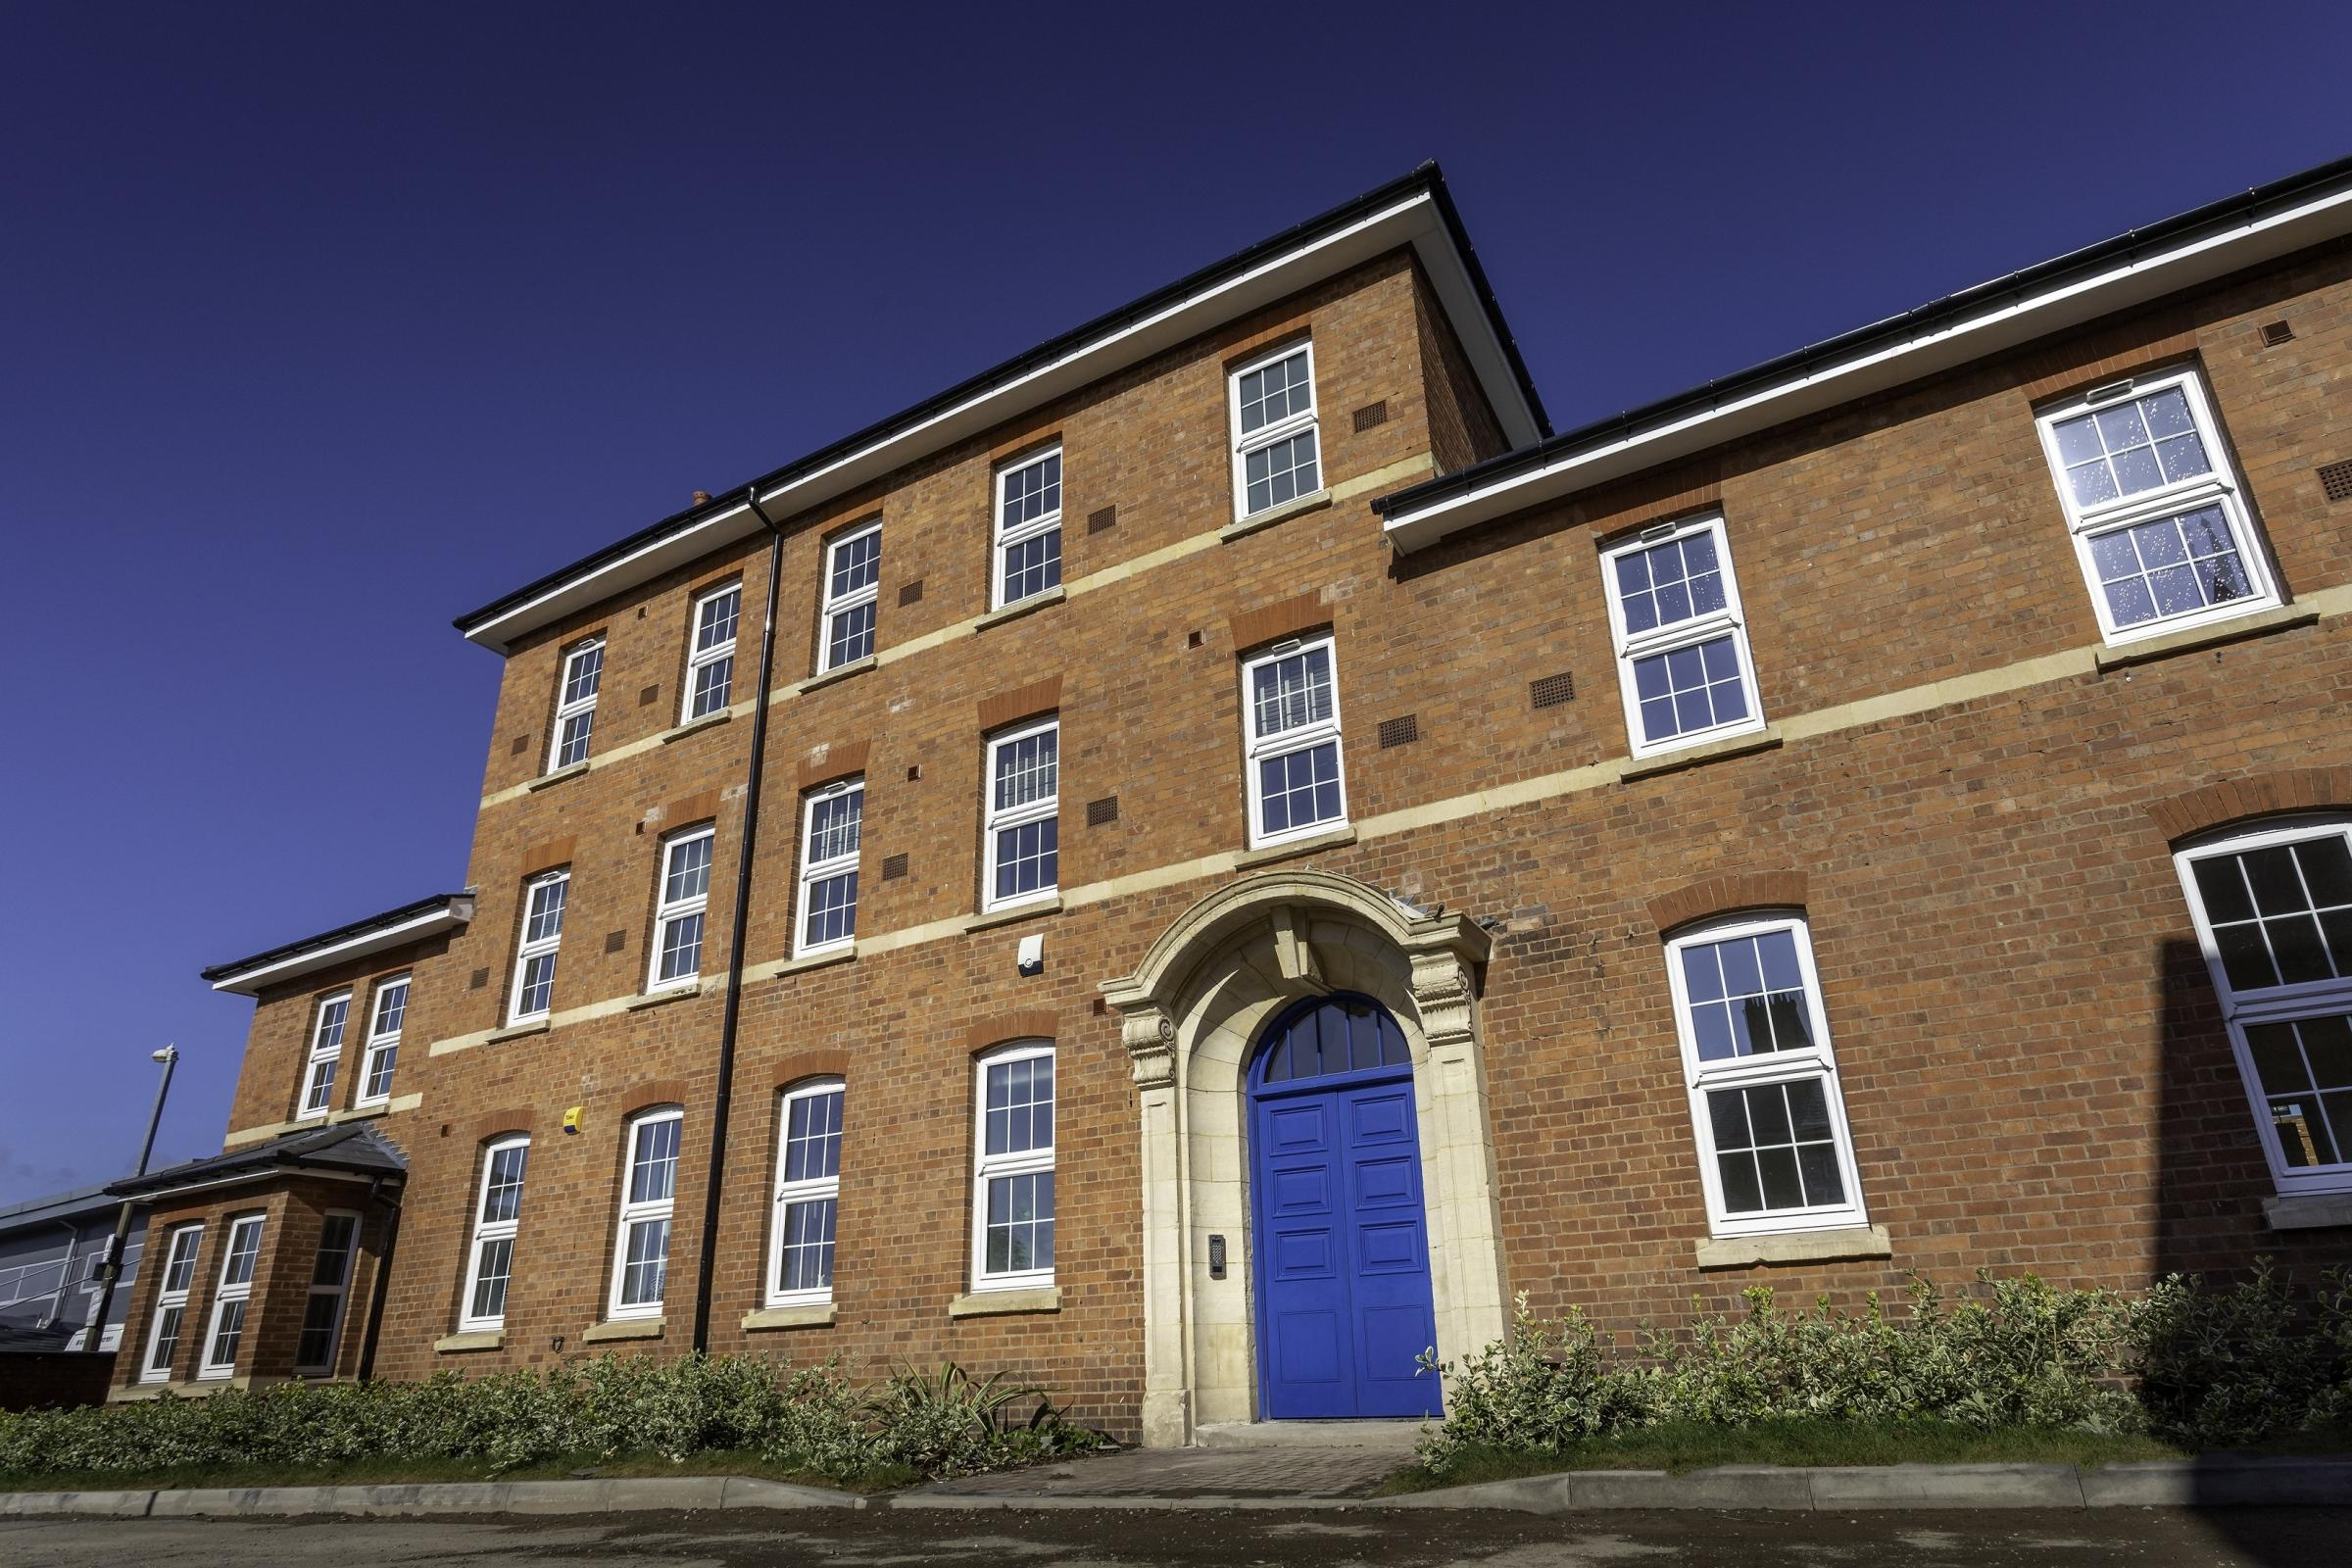 New homes open weekend at former Stourbridge Police Station